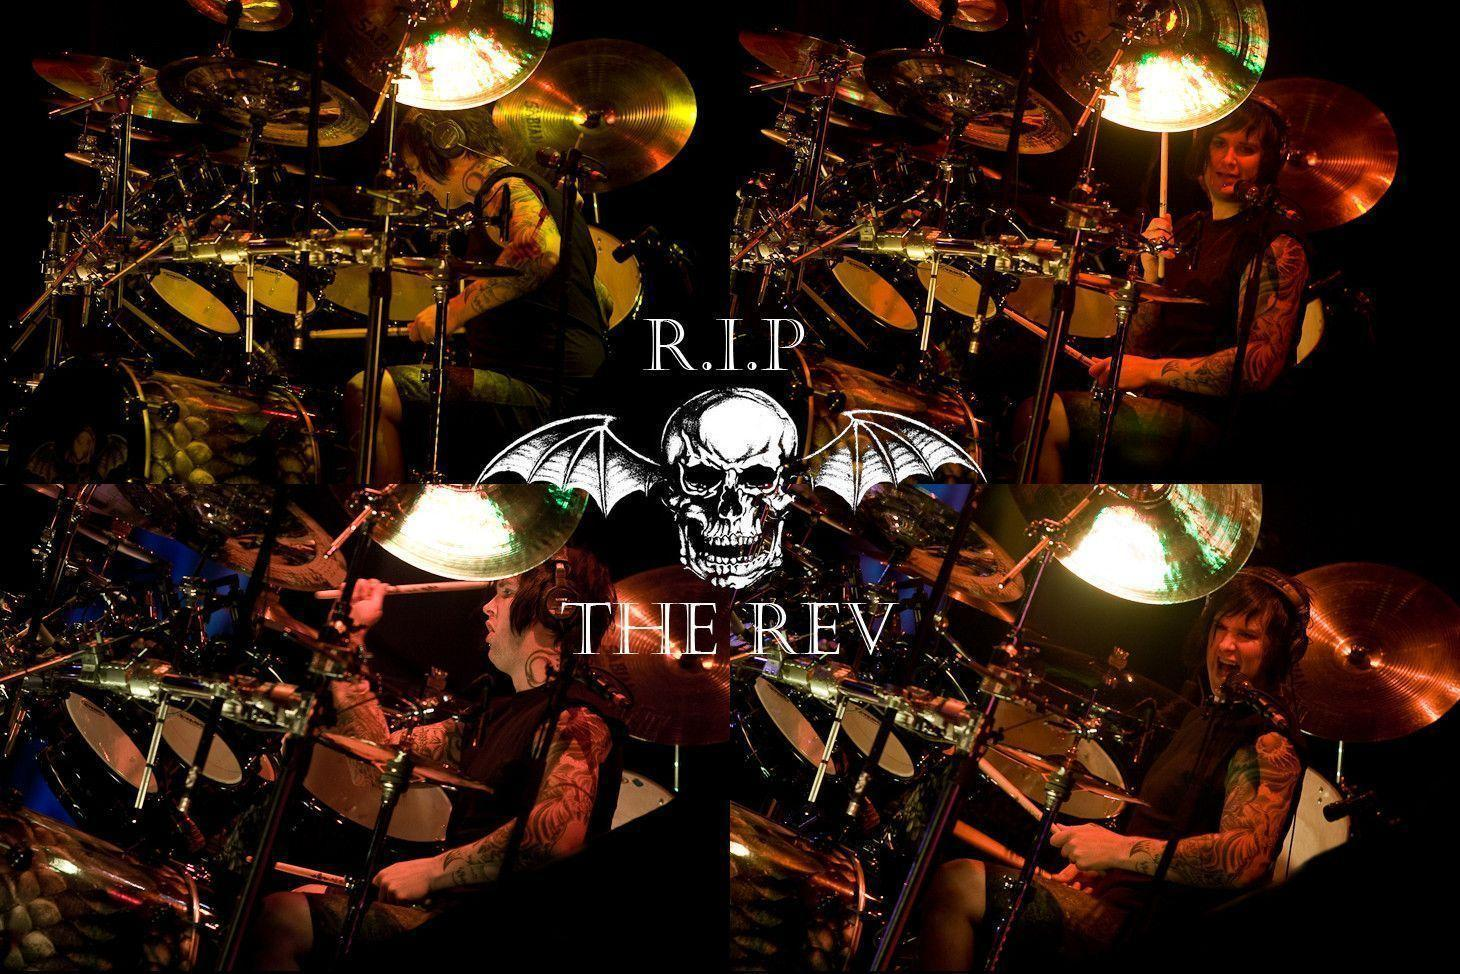 The Rev Wallpapers 1460x974